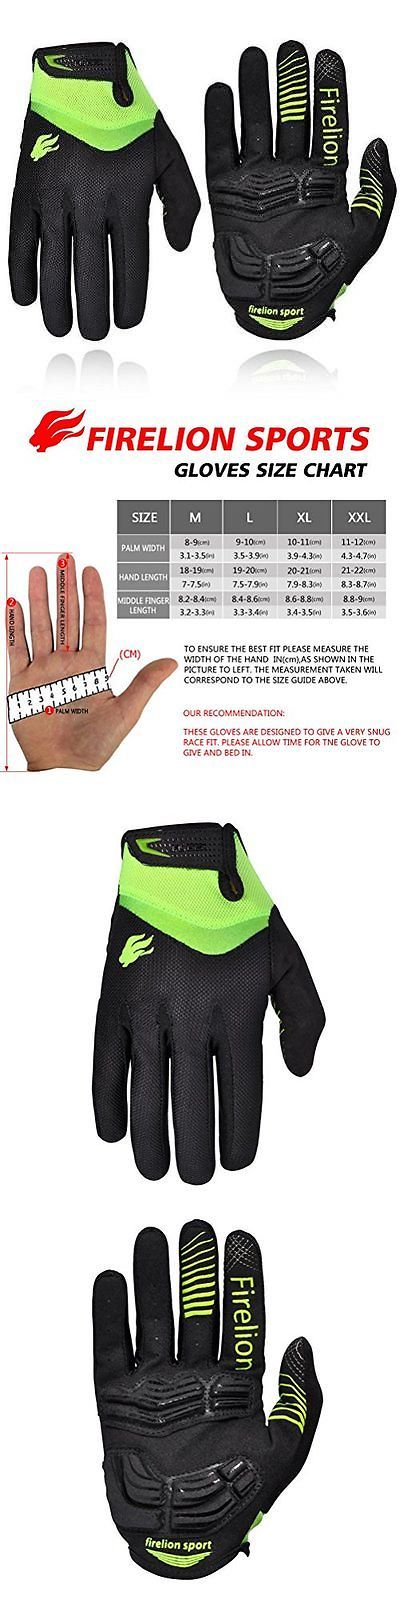 Gloves 22683: Firelion Cycling Gloves Mountain Bike Gloves Road Racing Bicycle Gloves Gel New -> BUY IT NOW ONLY: $38.15 on eBay!